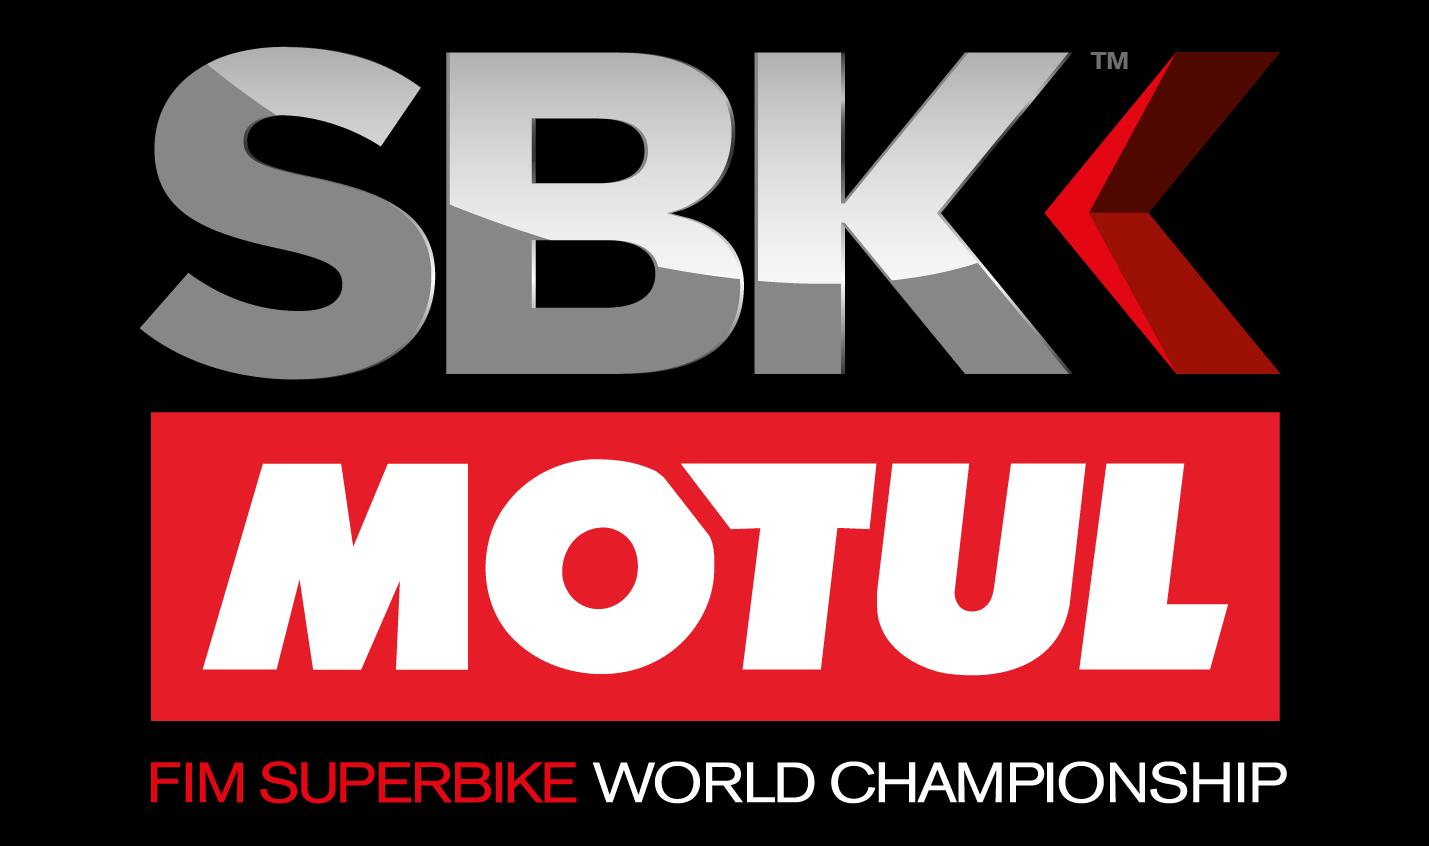 Motul FIM 슈퍼 바이크 월드 챔피언 십(Motul Fim Superbike World Championship)